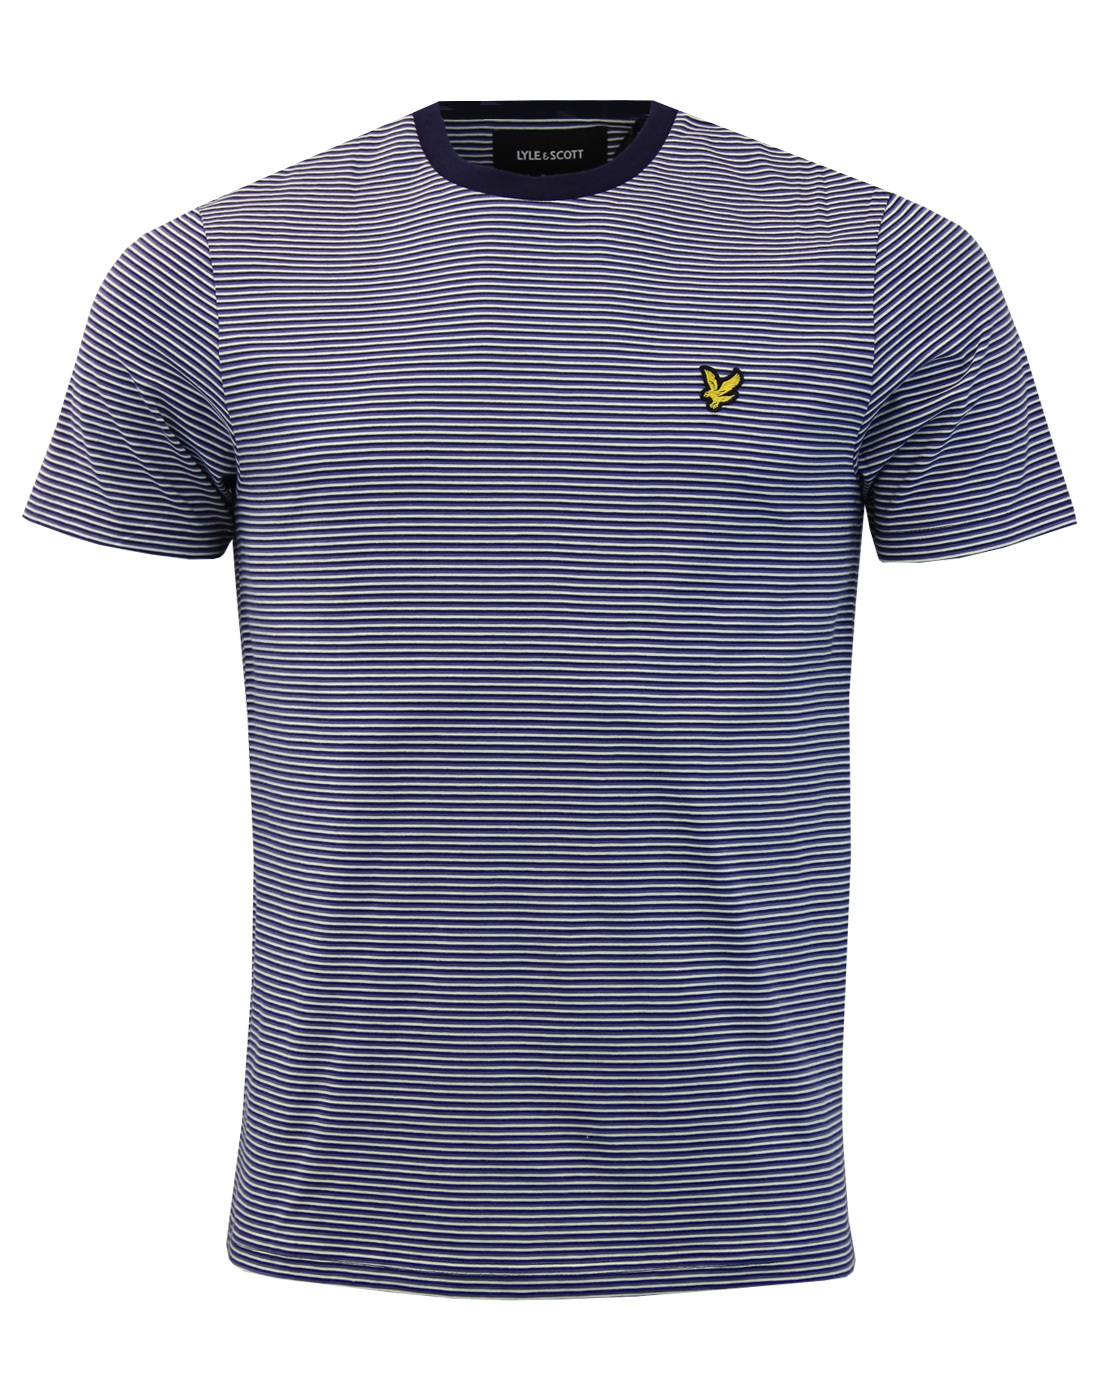 LYLE & SCOTT Retro Mod Feeder Stripe Tee (Navy)